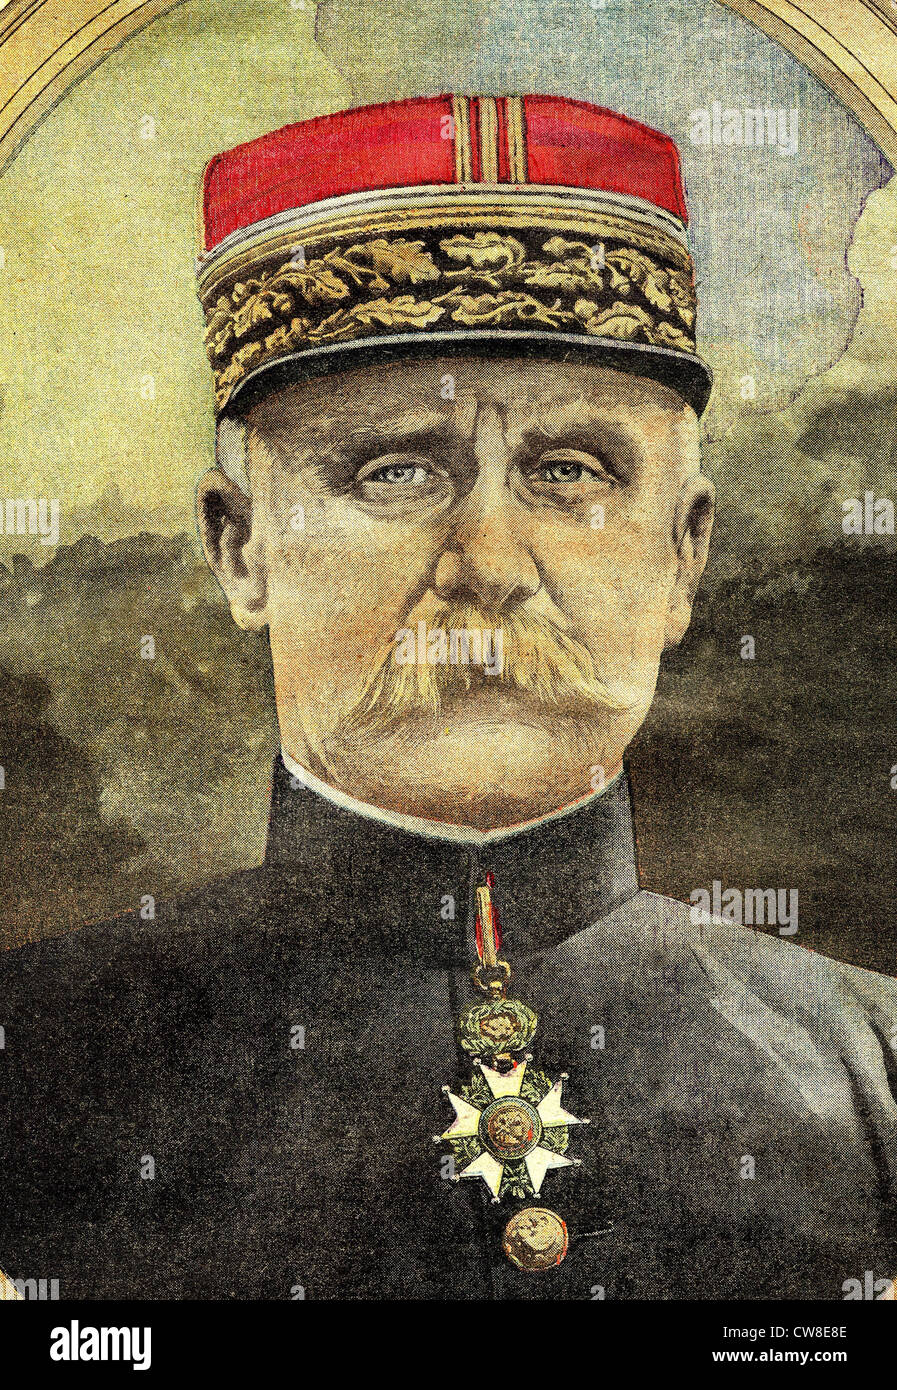 Portrait of general Petain - Stock Image